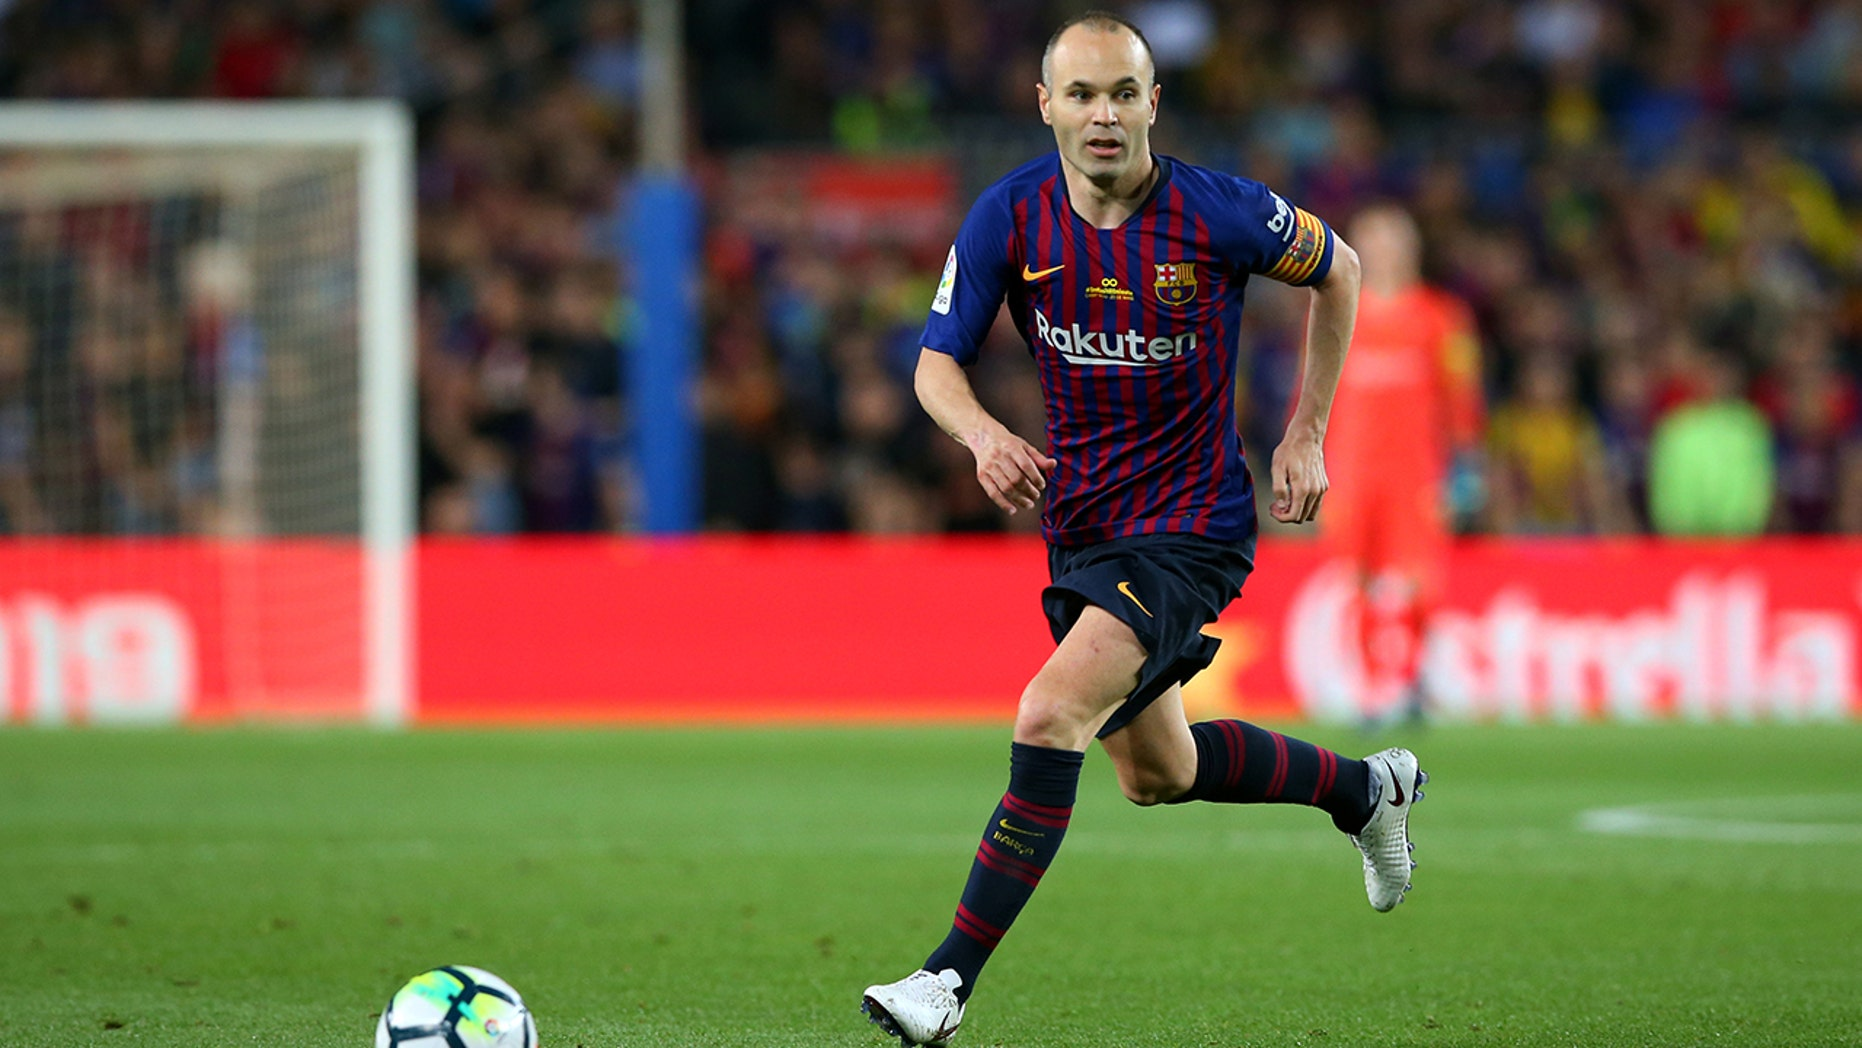 Andres Iniesta was the former Barcelona soccer captain and scored the winning goal for Spain in the 2010 World Cup final.